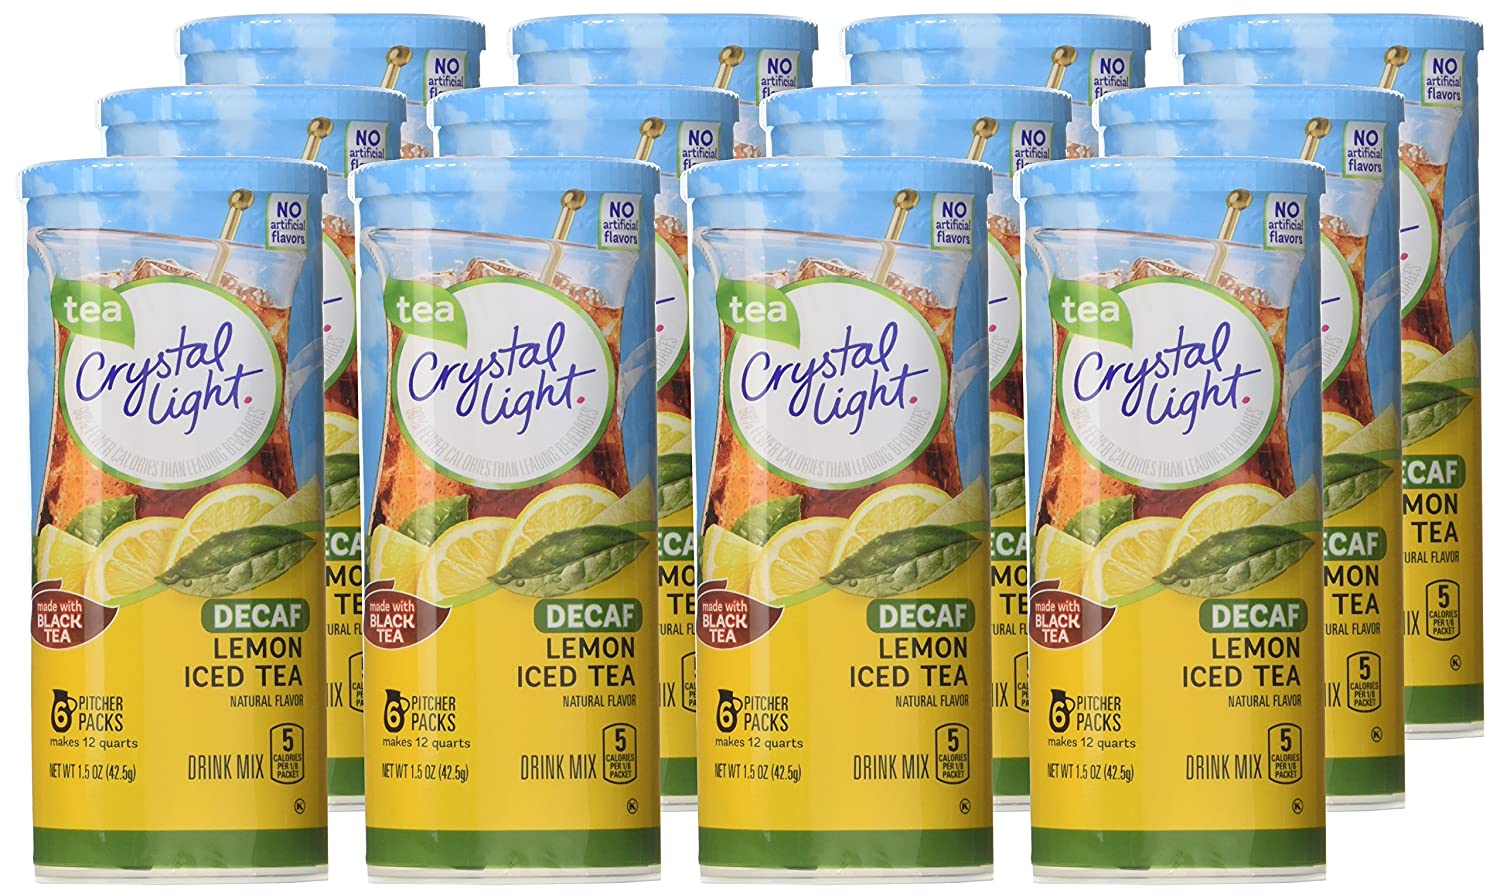 Crystal Light Decaf Iced Tea Drink Mix, Natural Lemon Flavor, 1.5 Ounce Packages: Amazon.es: Alimentación y bebidas